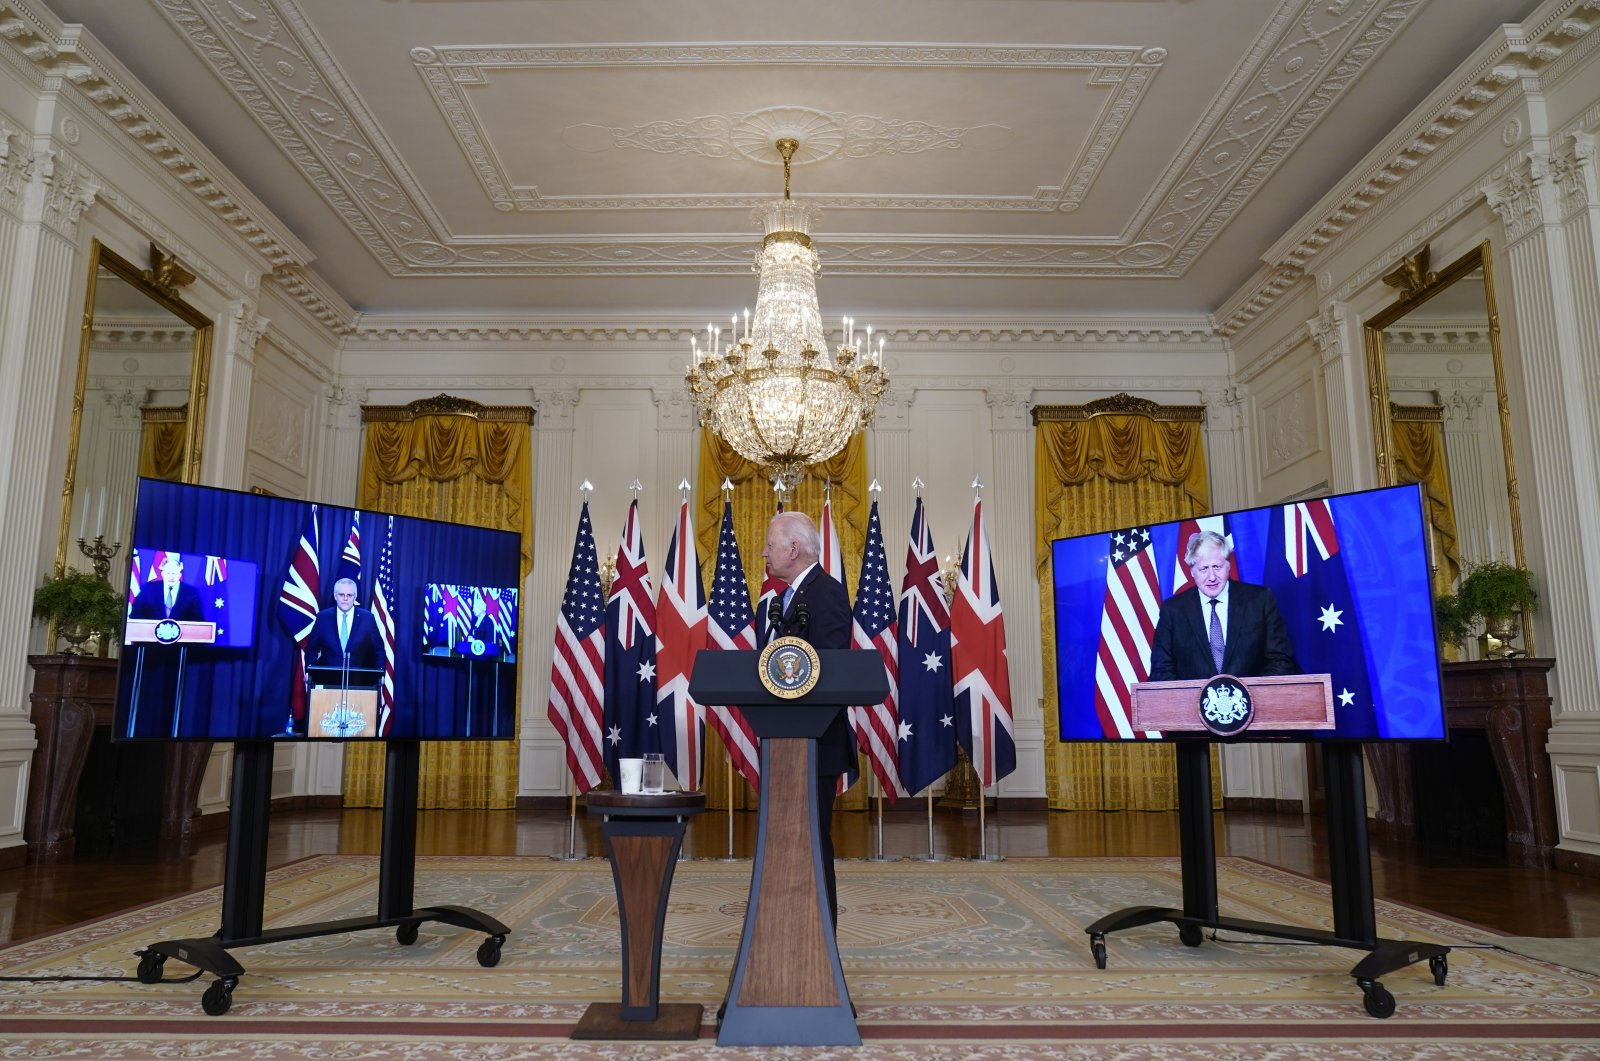 U.S. President Joe Biden, listens as he is joined virtually by Australian Prime Minister Scott Morrison, left, and British Prime Minister Boris Johnson, speaks about a national security initiative in the East Room of the White House in Washington, Wednesday, Sept. 15, 2021. (AP Photo)